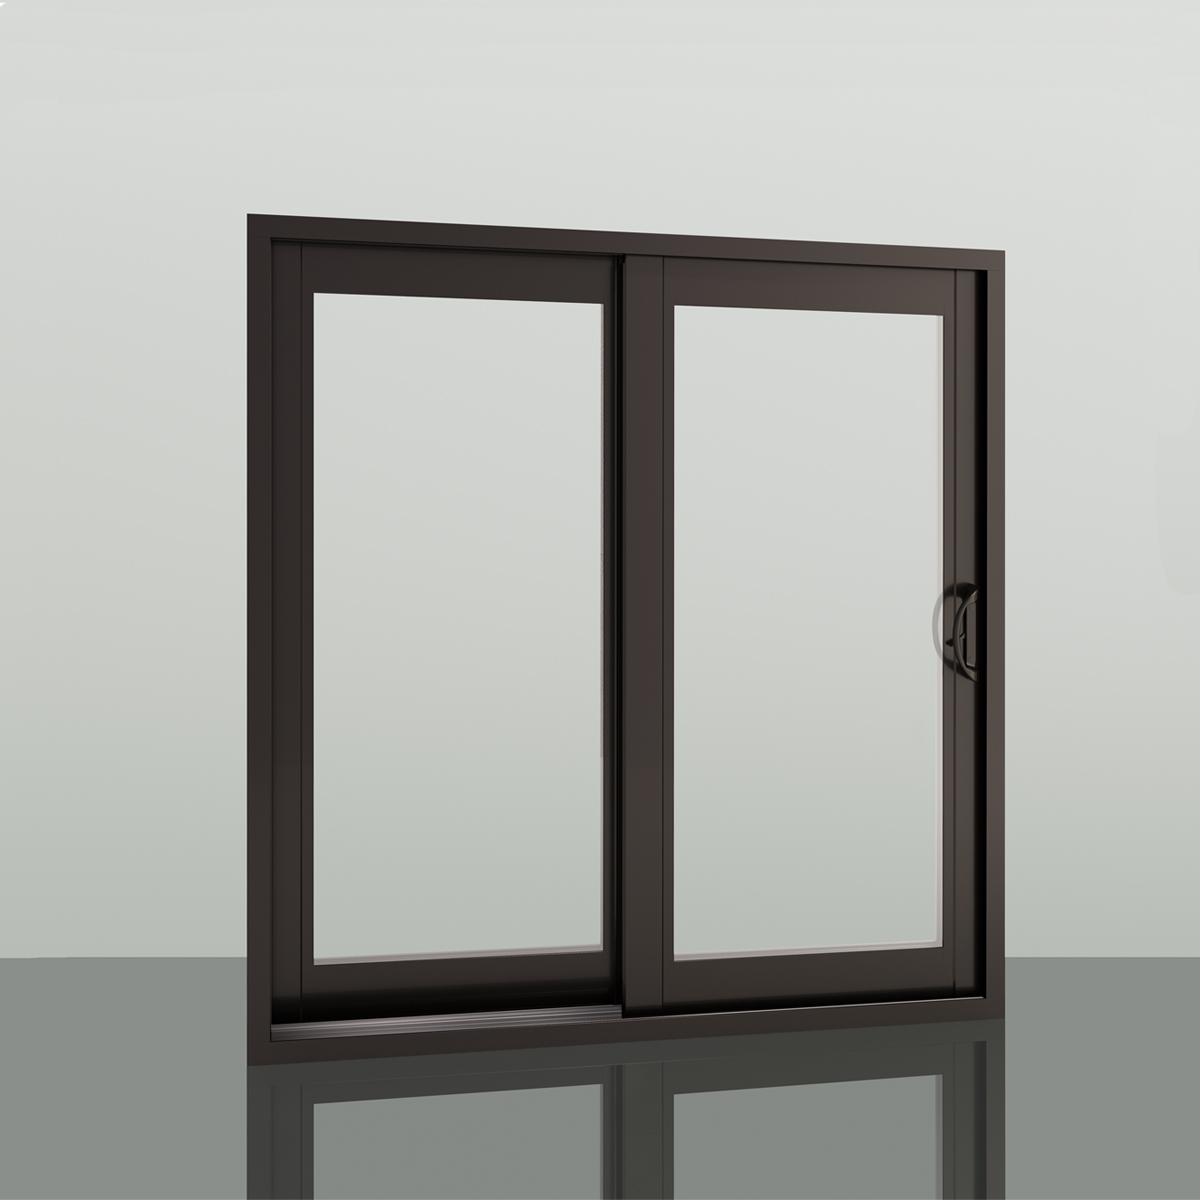 Sliding Doors Of Glass: MI Windows And Doors